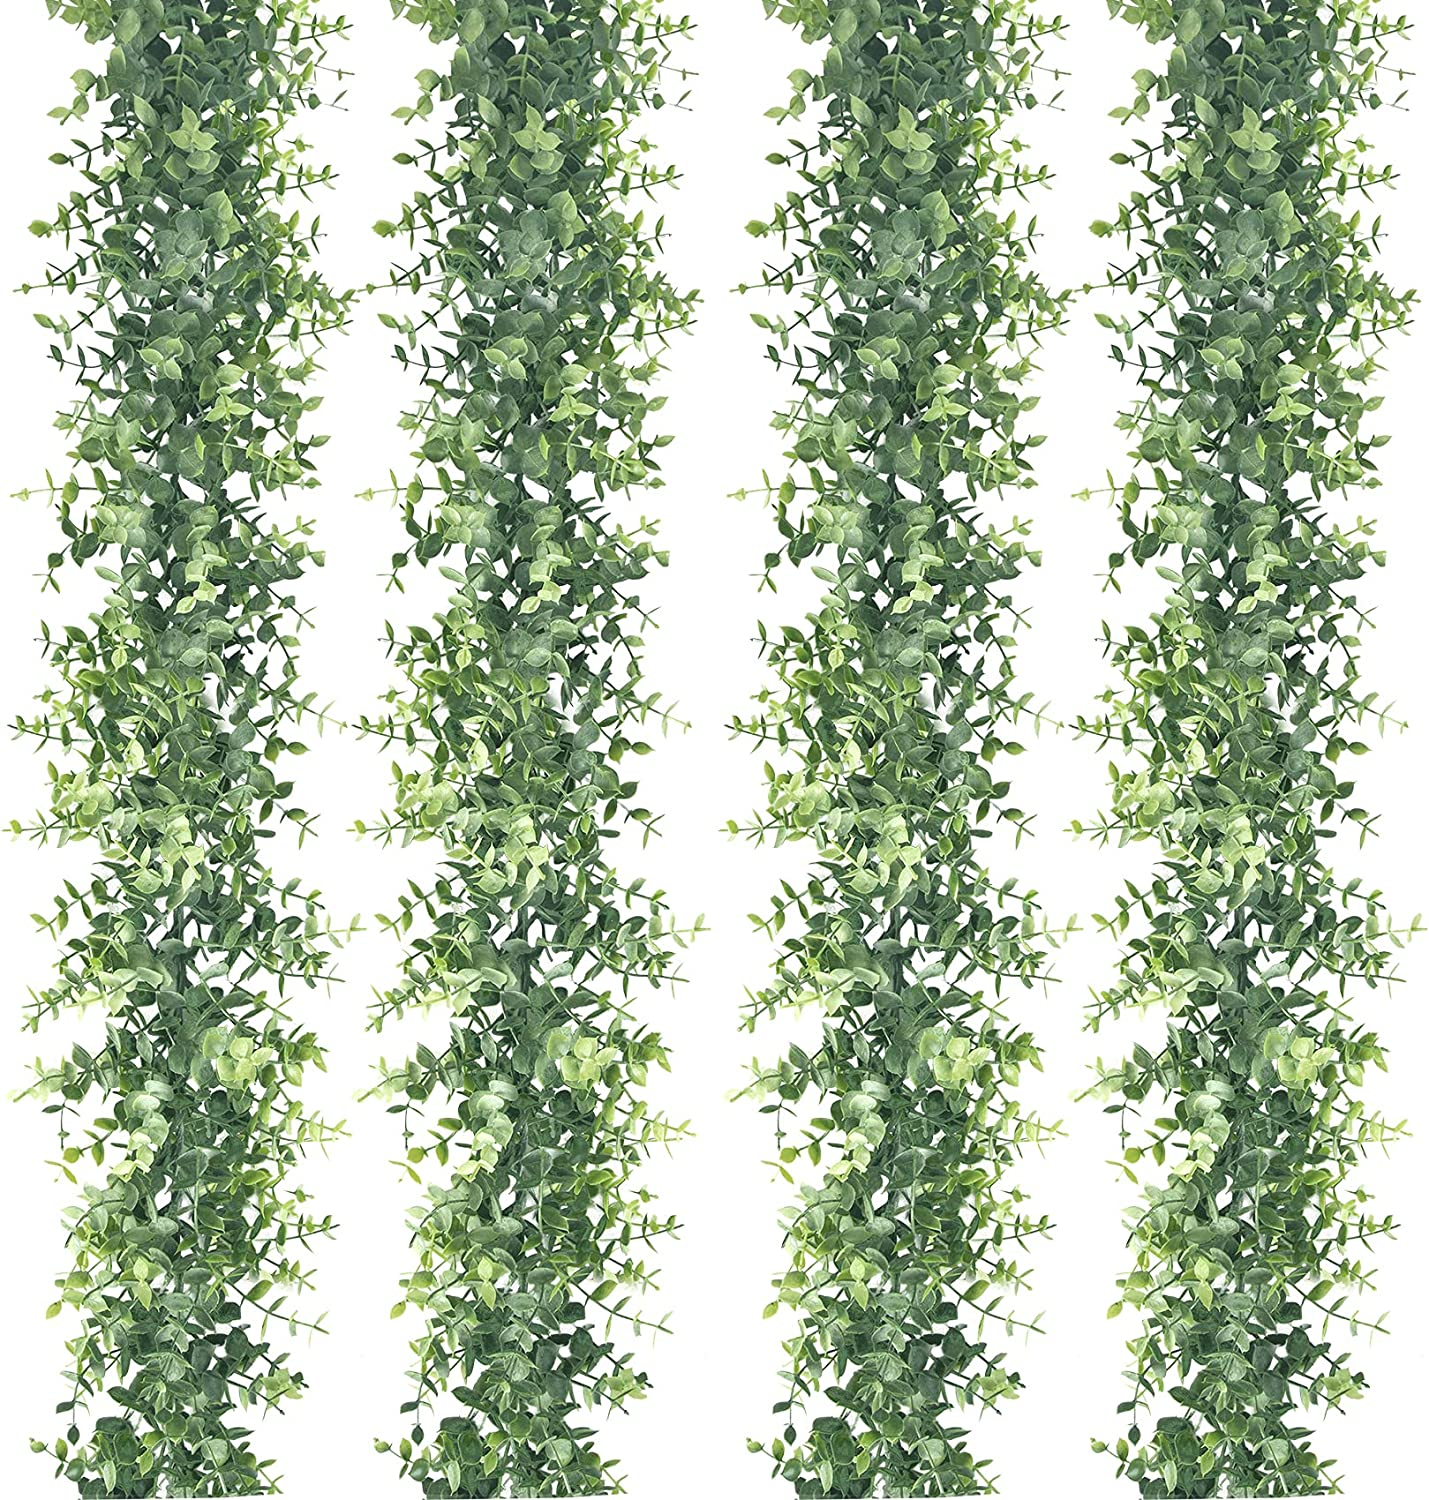 4 Pack Eucalyptus Garland 24 Ft Greenery Ivy Garland Eucalyptus Leaves Fake Vines for Wedding Backdrop Arch Wall Decor Artificial Hanging Plants for Indoor Outdoor Table Festival Party Decor (Frosted)